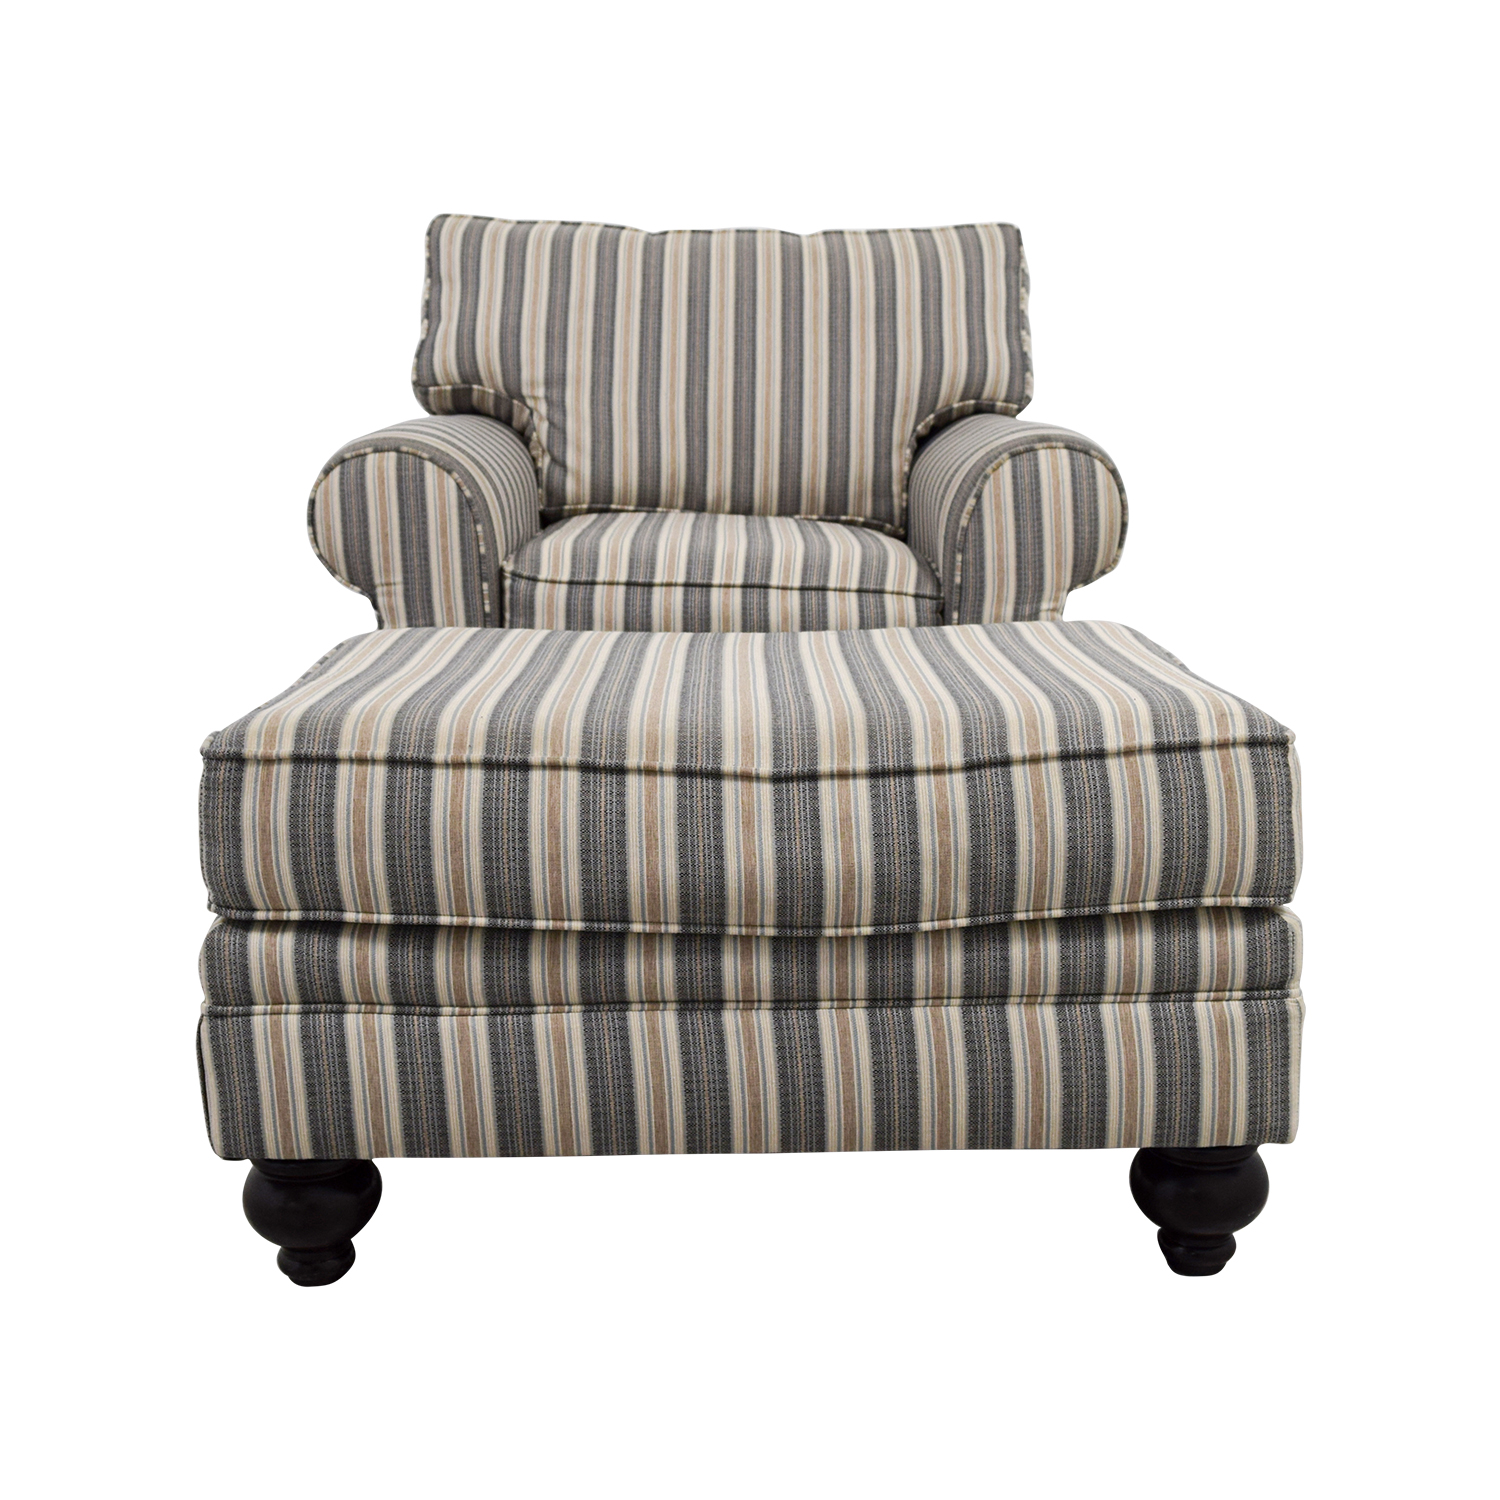 66% OFF Bob s Furniture Bob s Furniture Sofa Chair with Ottoman